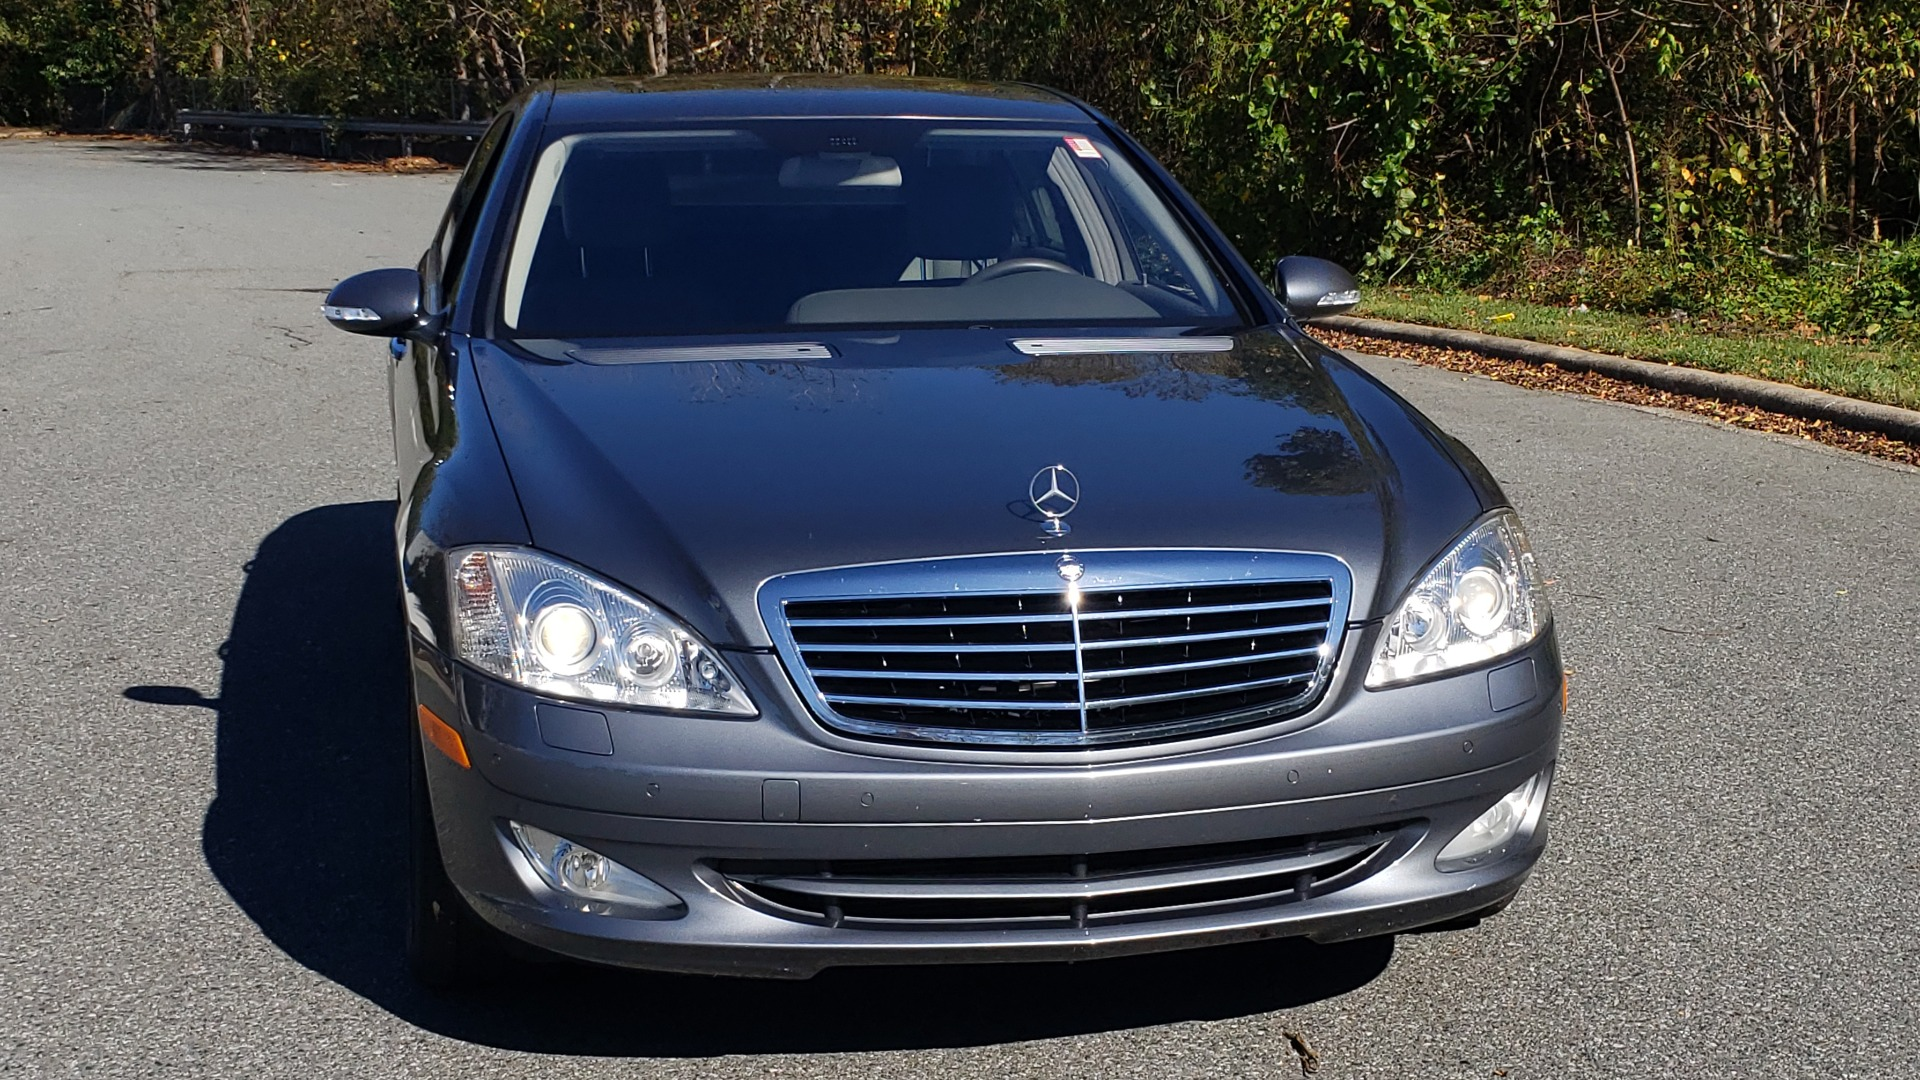 Used 2007 Mercedes-Benz S-CLASS S550 5.5L V8 / LWB / PREM 2 / NAV / SUNROOF / KEYLESS-GO for sale Sold at Formula Imports in Charlotte NC 28227 23